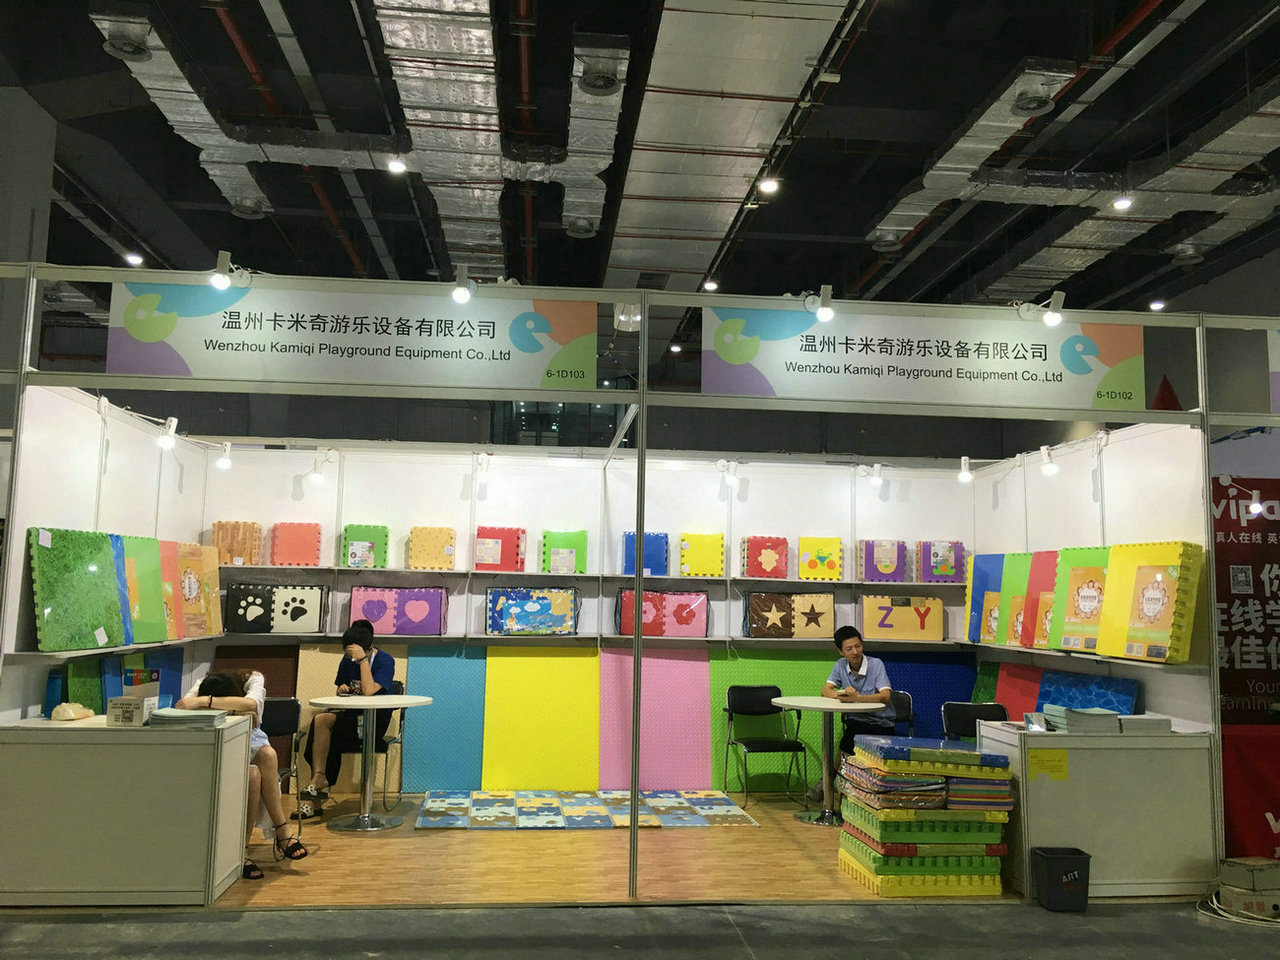 The 16th Shanghai International Children-Baby-Maternity Industry Expo